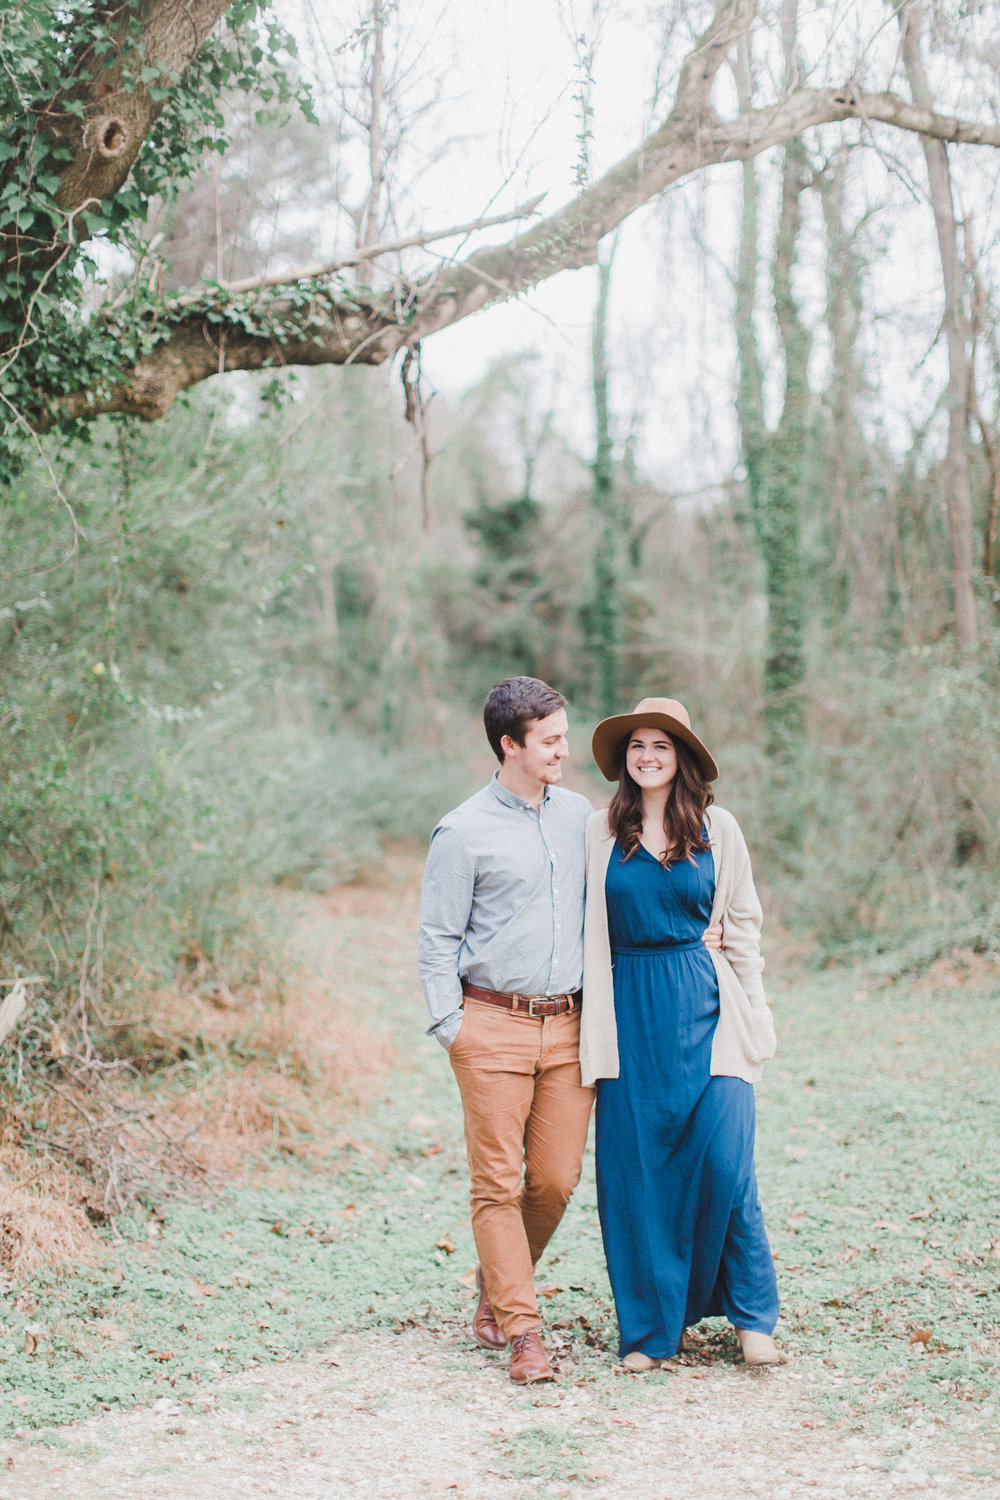 Their light and airy engagements were taken by Annamarie Akins! I cannot WAIT to see them rock the camera on wedding day!